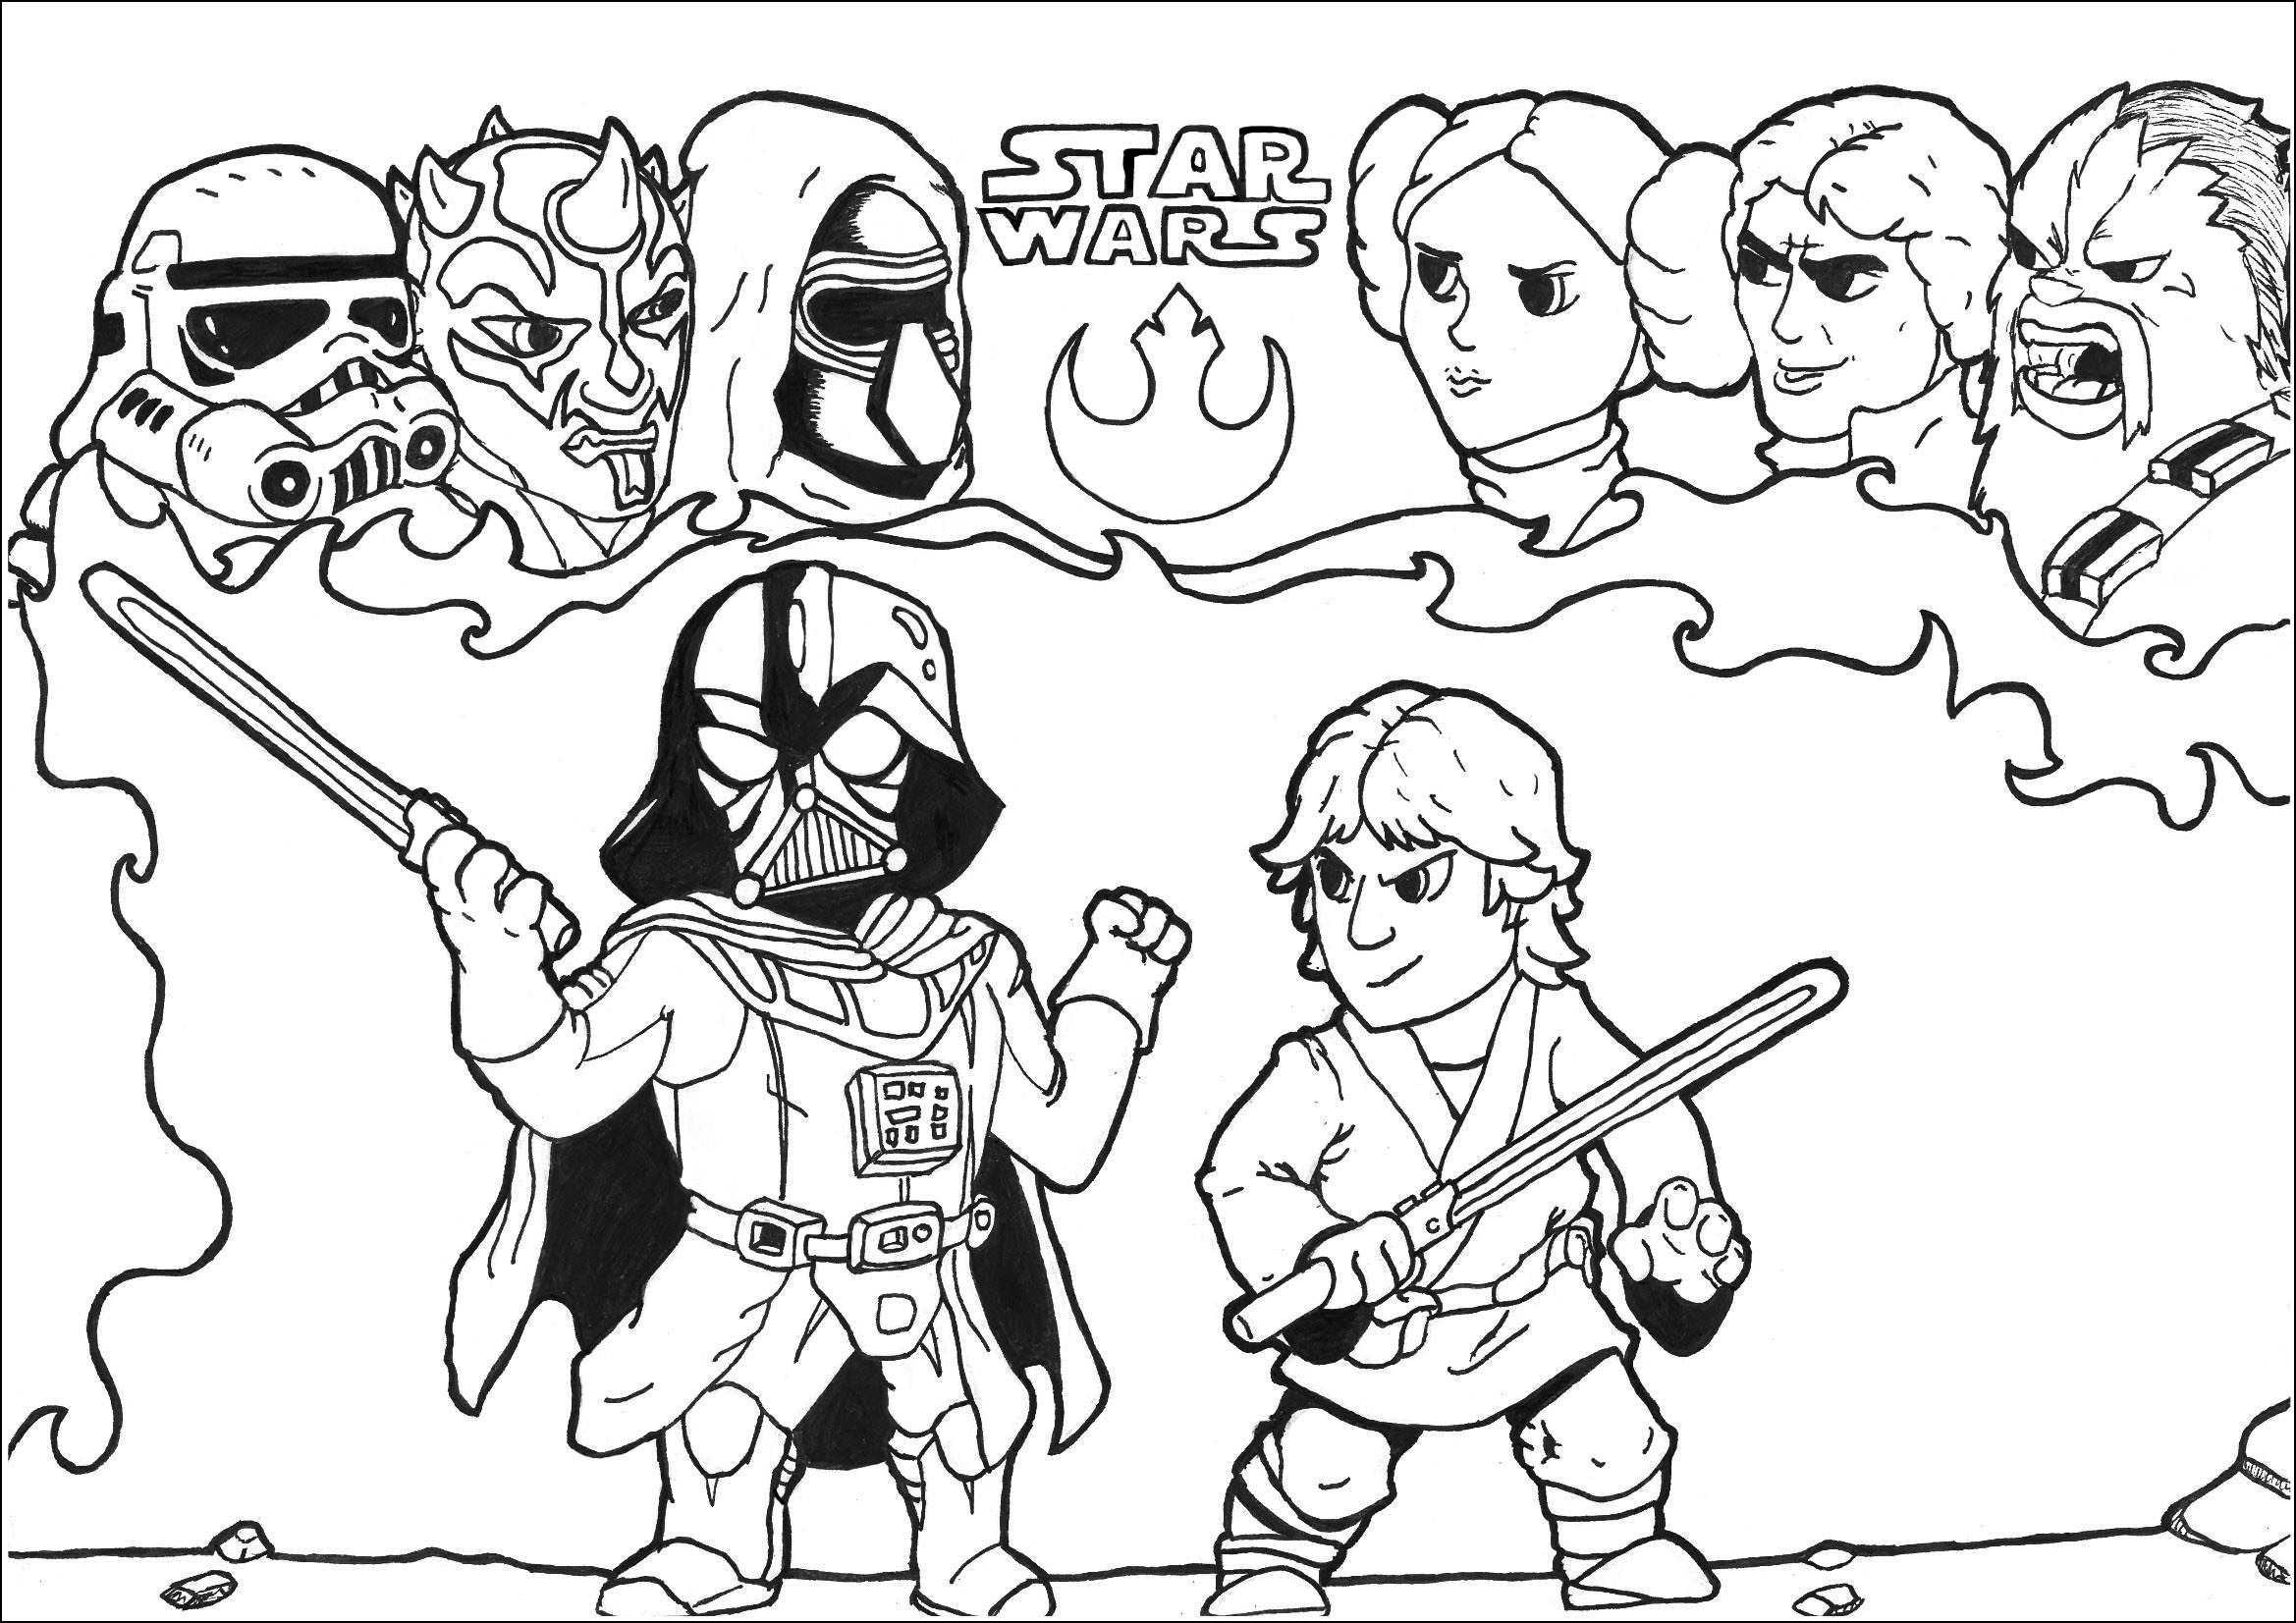 Darth Vader Ausmalbilder Genial Darth Vader Coloring Pages Inspirational 37 Malvorlagen Star Wars Stock